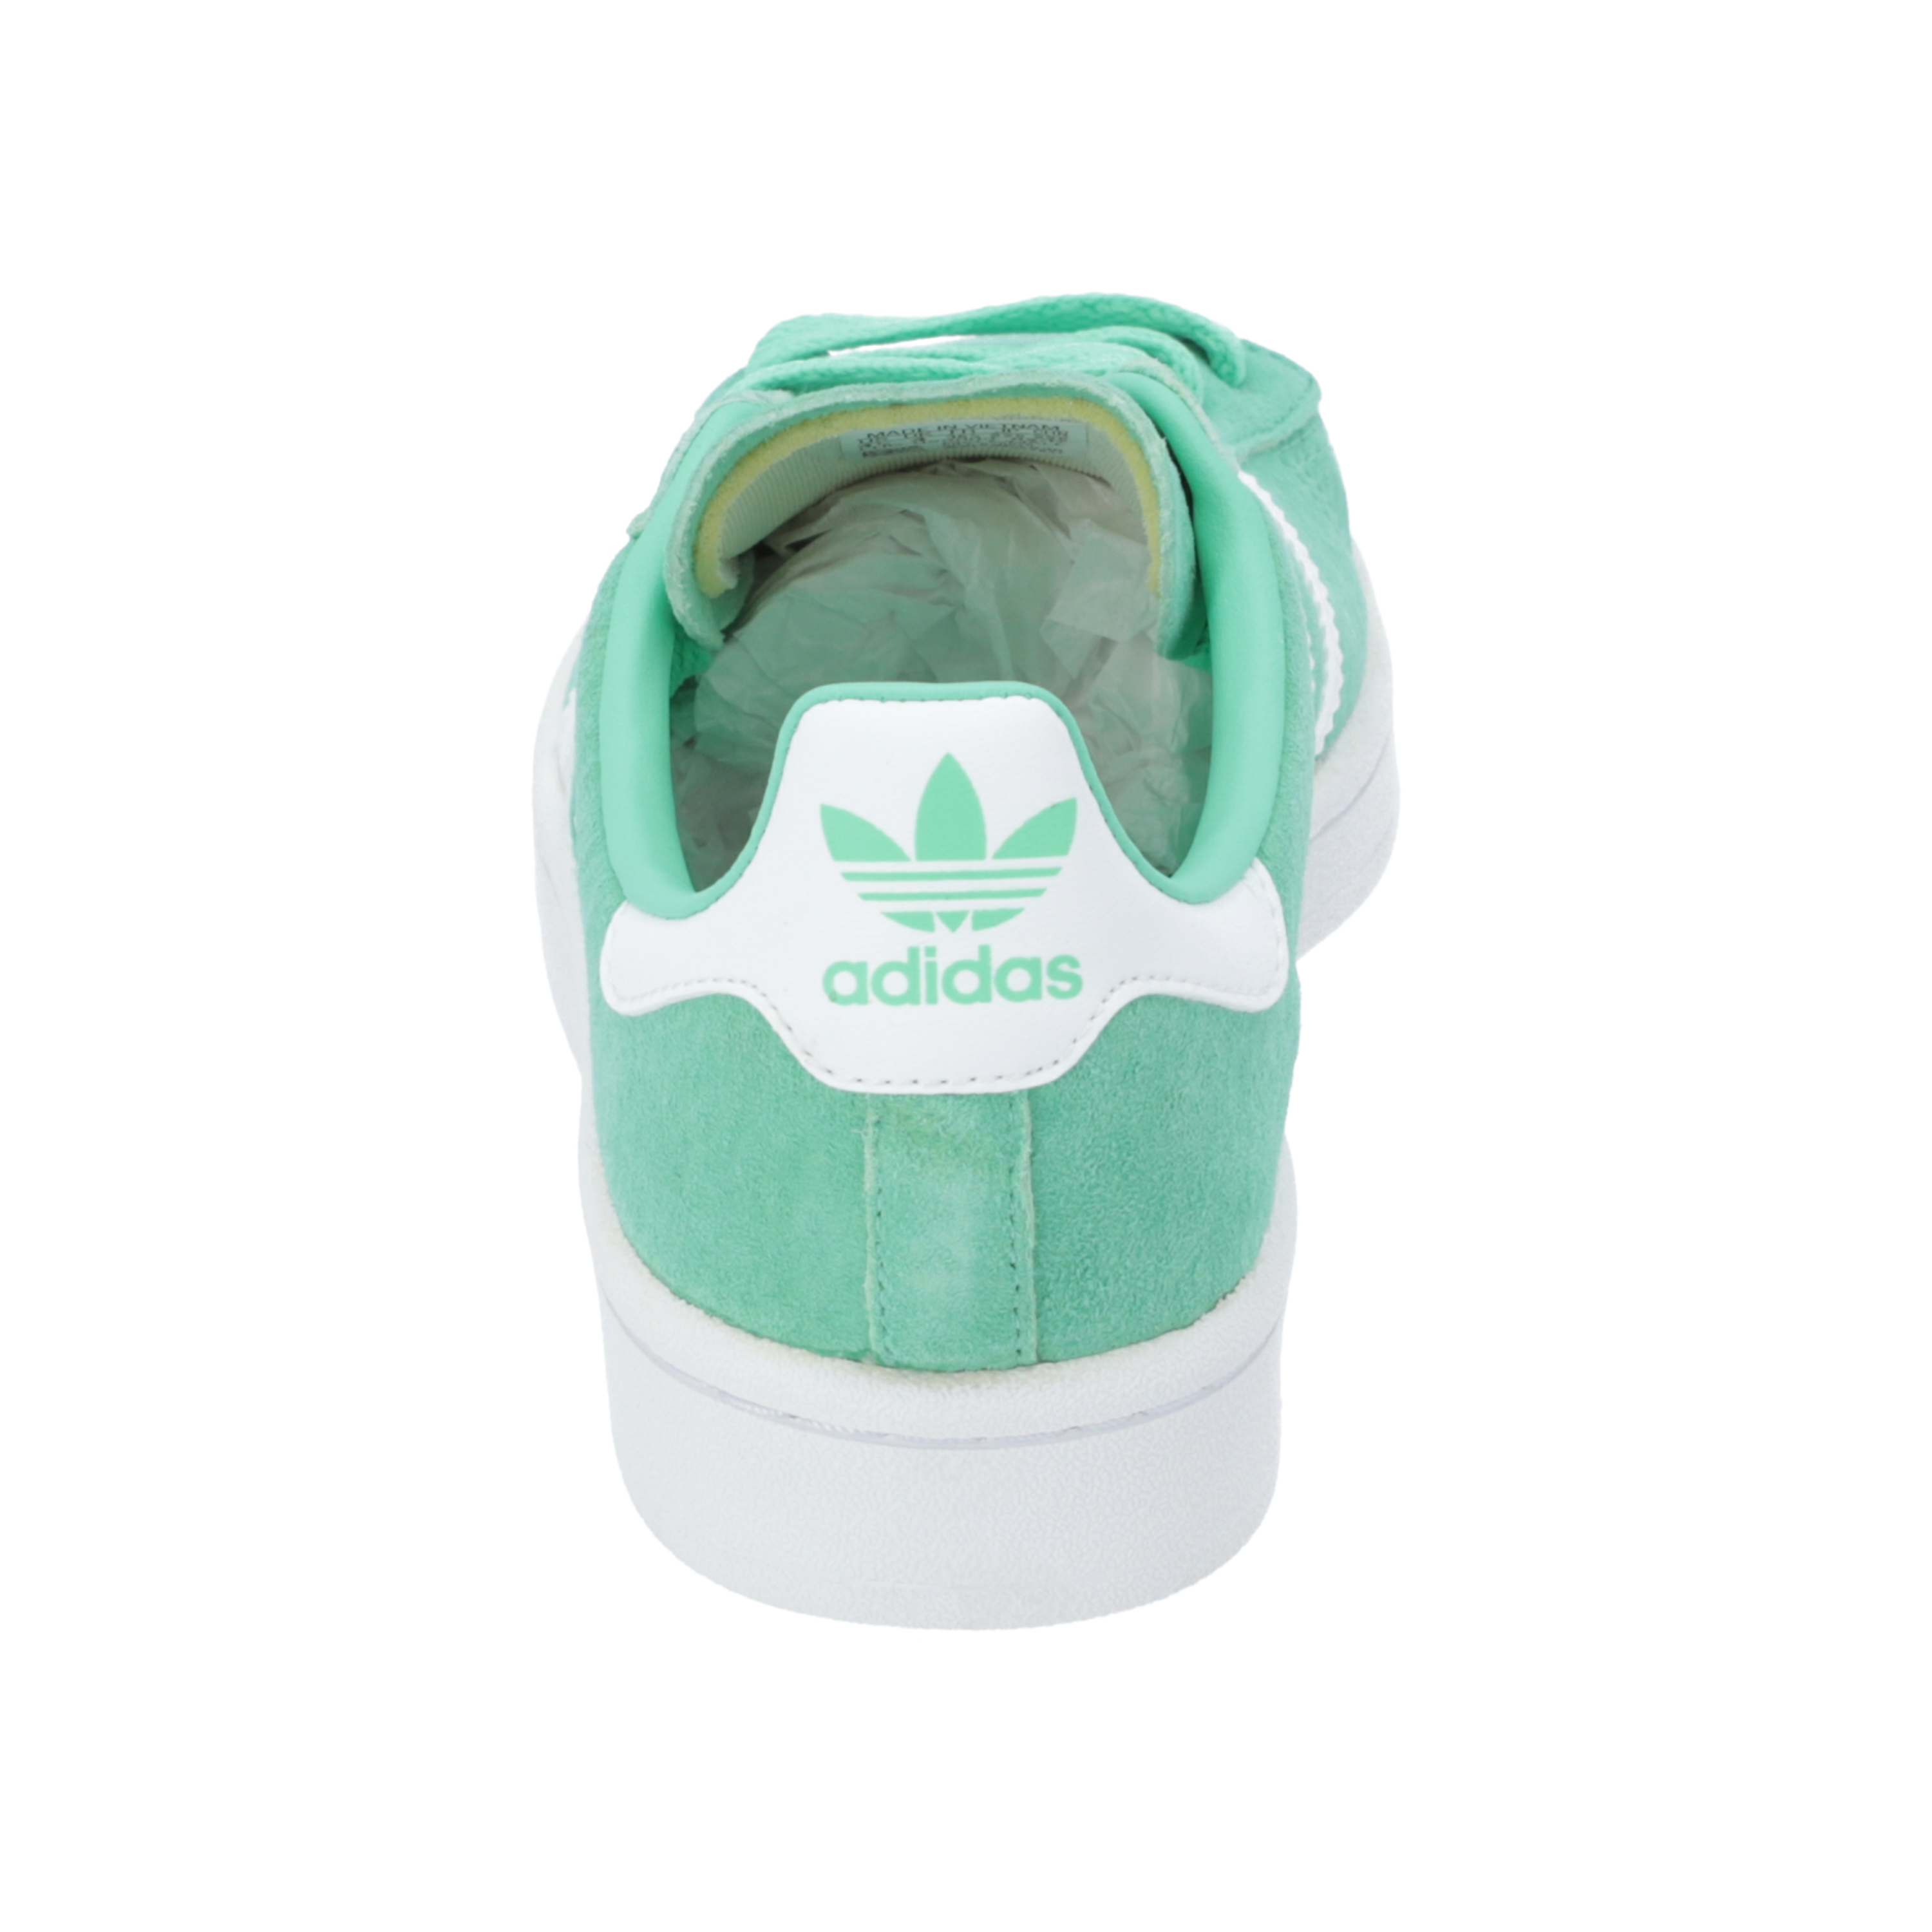 Details about adidas Originals CAMPUS Women Men Sneakers Green NEW Trainers Sports Shoes